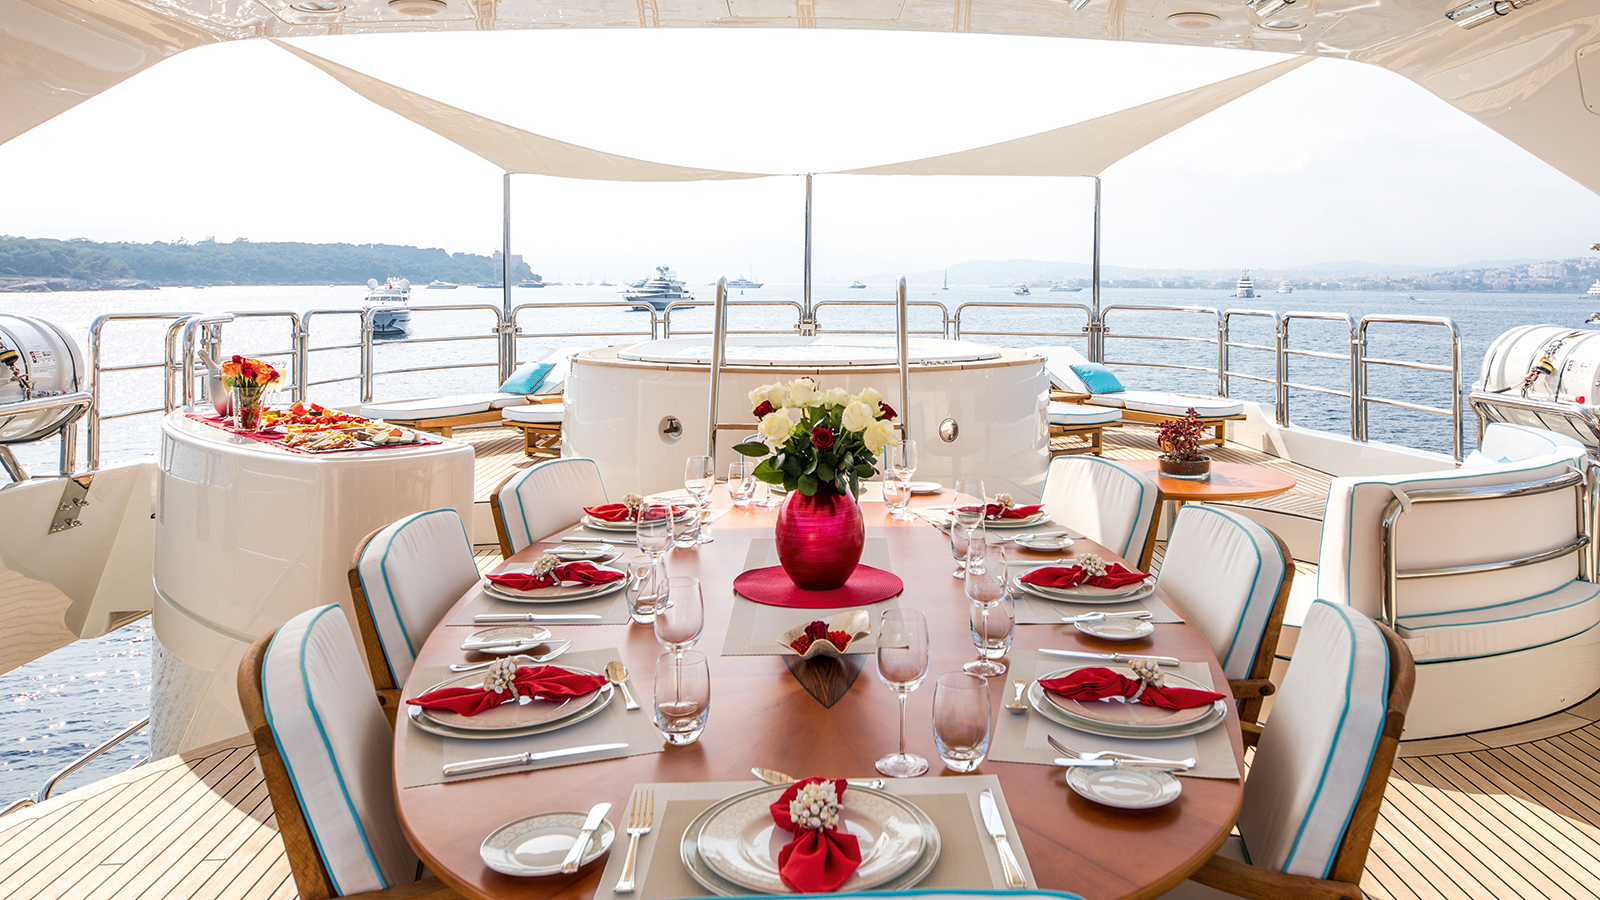 the-upper-deck-aft-of-the-refitted-benetti-superyacht-blue-vision-credit-blue-i-productions